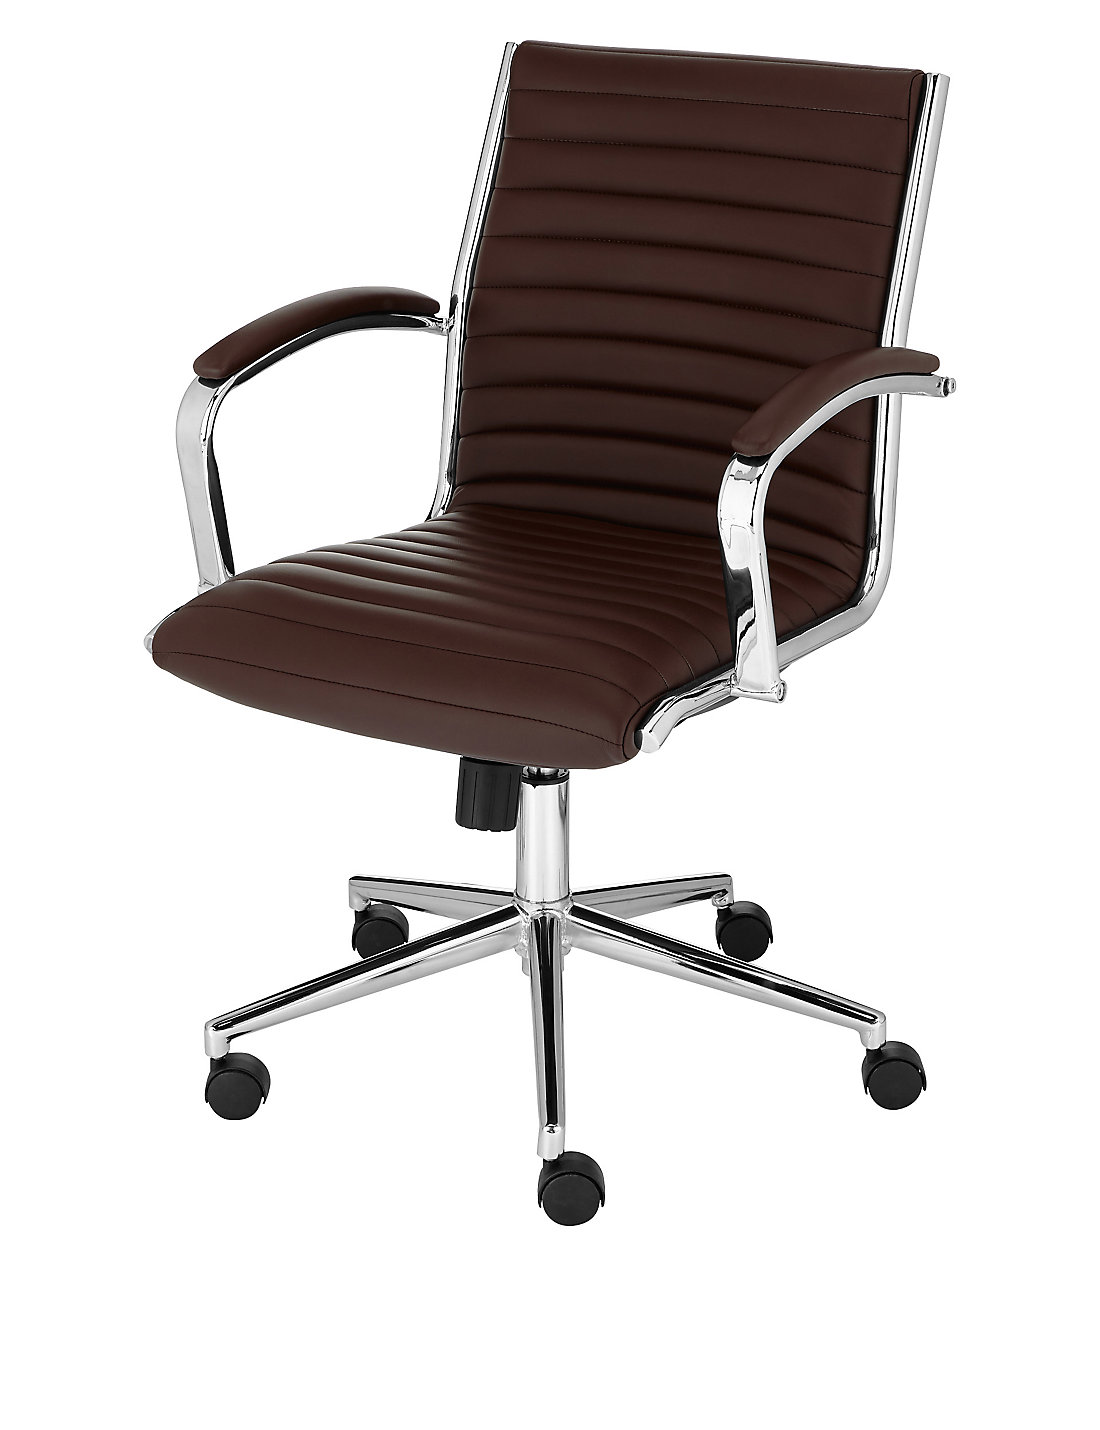 office chairs | leather & modern home office chairs | m&s